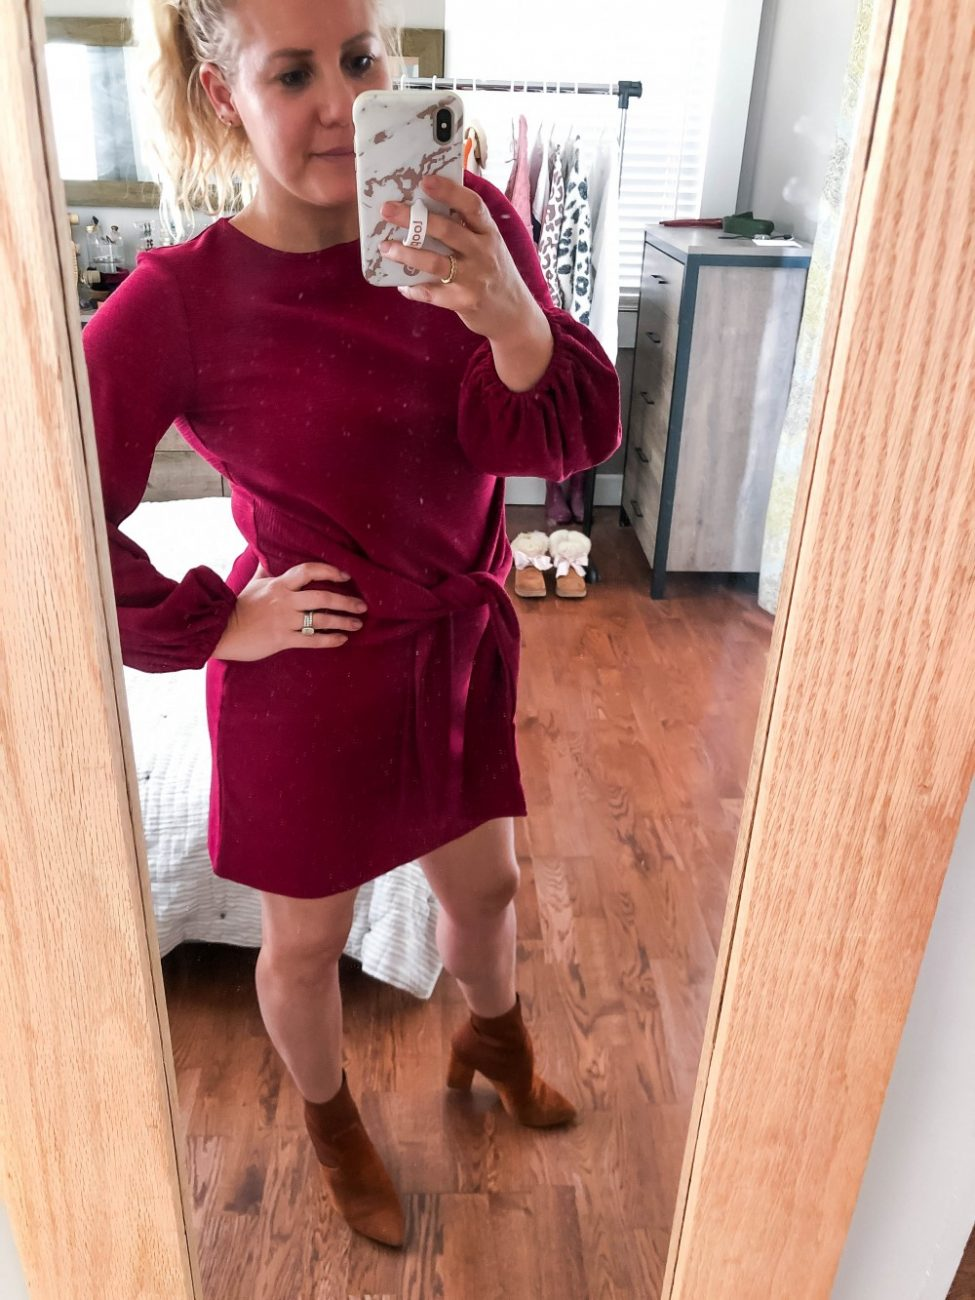 Amazon Fashion Fall Try On Haul including honest opinion in fit, price, and quality of each of the pieces. Click on over to the post to see what I thought about my haul and if it was a win or a bust and why! #fallfashion #amazonfashion #tryonsession #fallfashionhaul